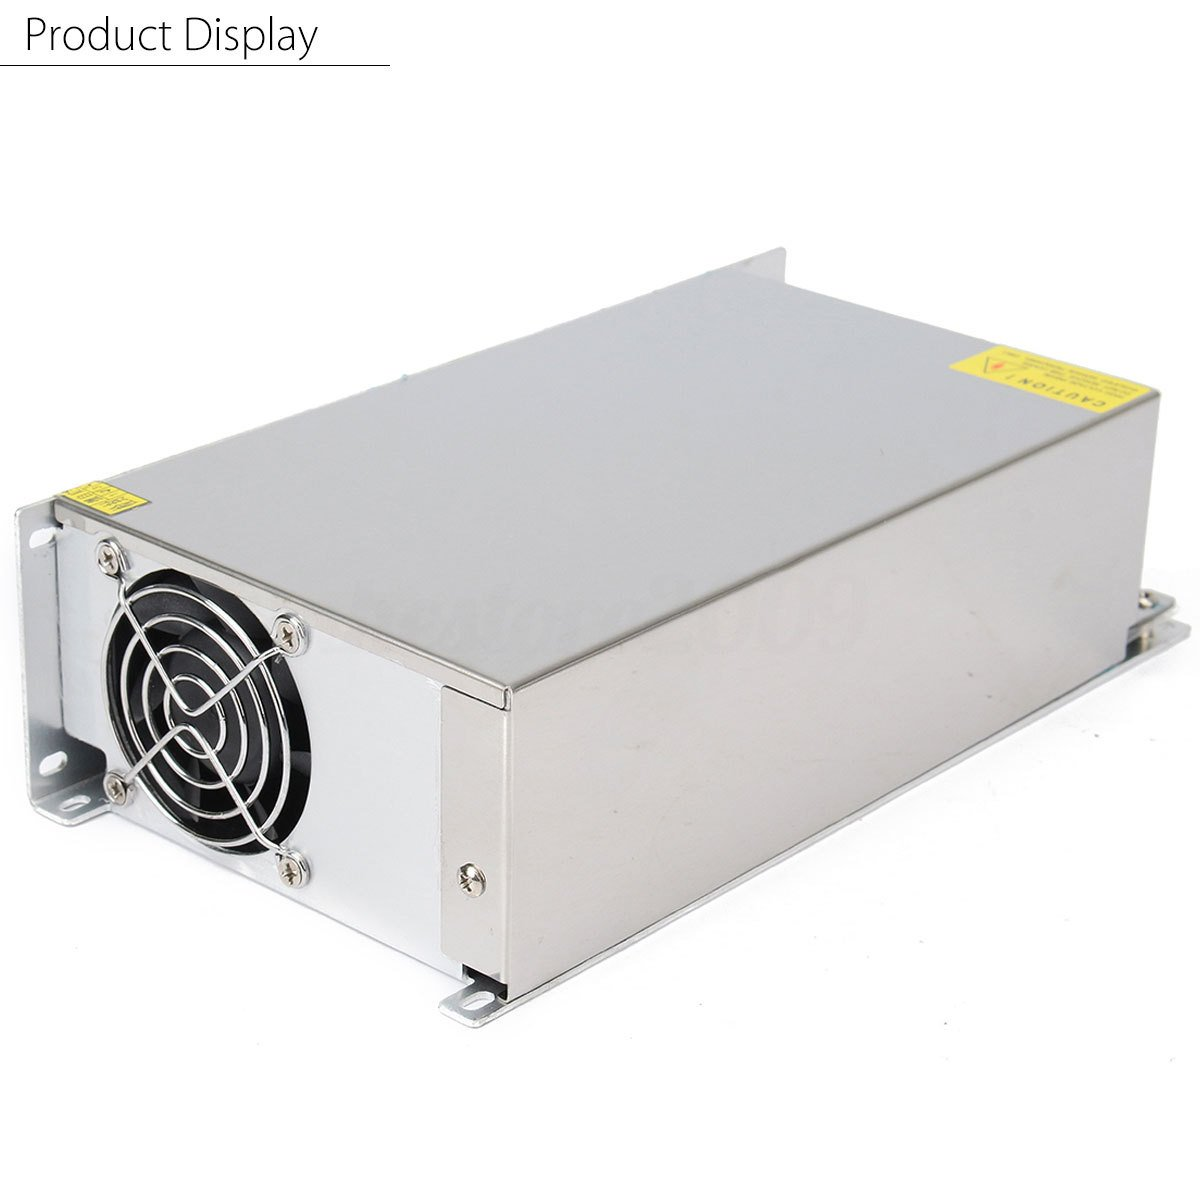 48V 20A 1000W Universal Regulated Switching Power Supply Driver for CCTV camera LED Strip AC 100-240V Input to DC 48V by Xunba Tech (Image #5)